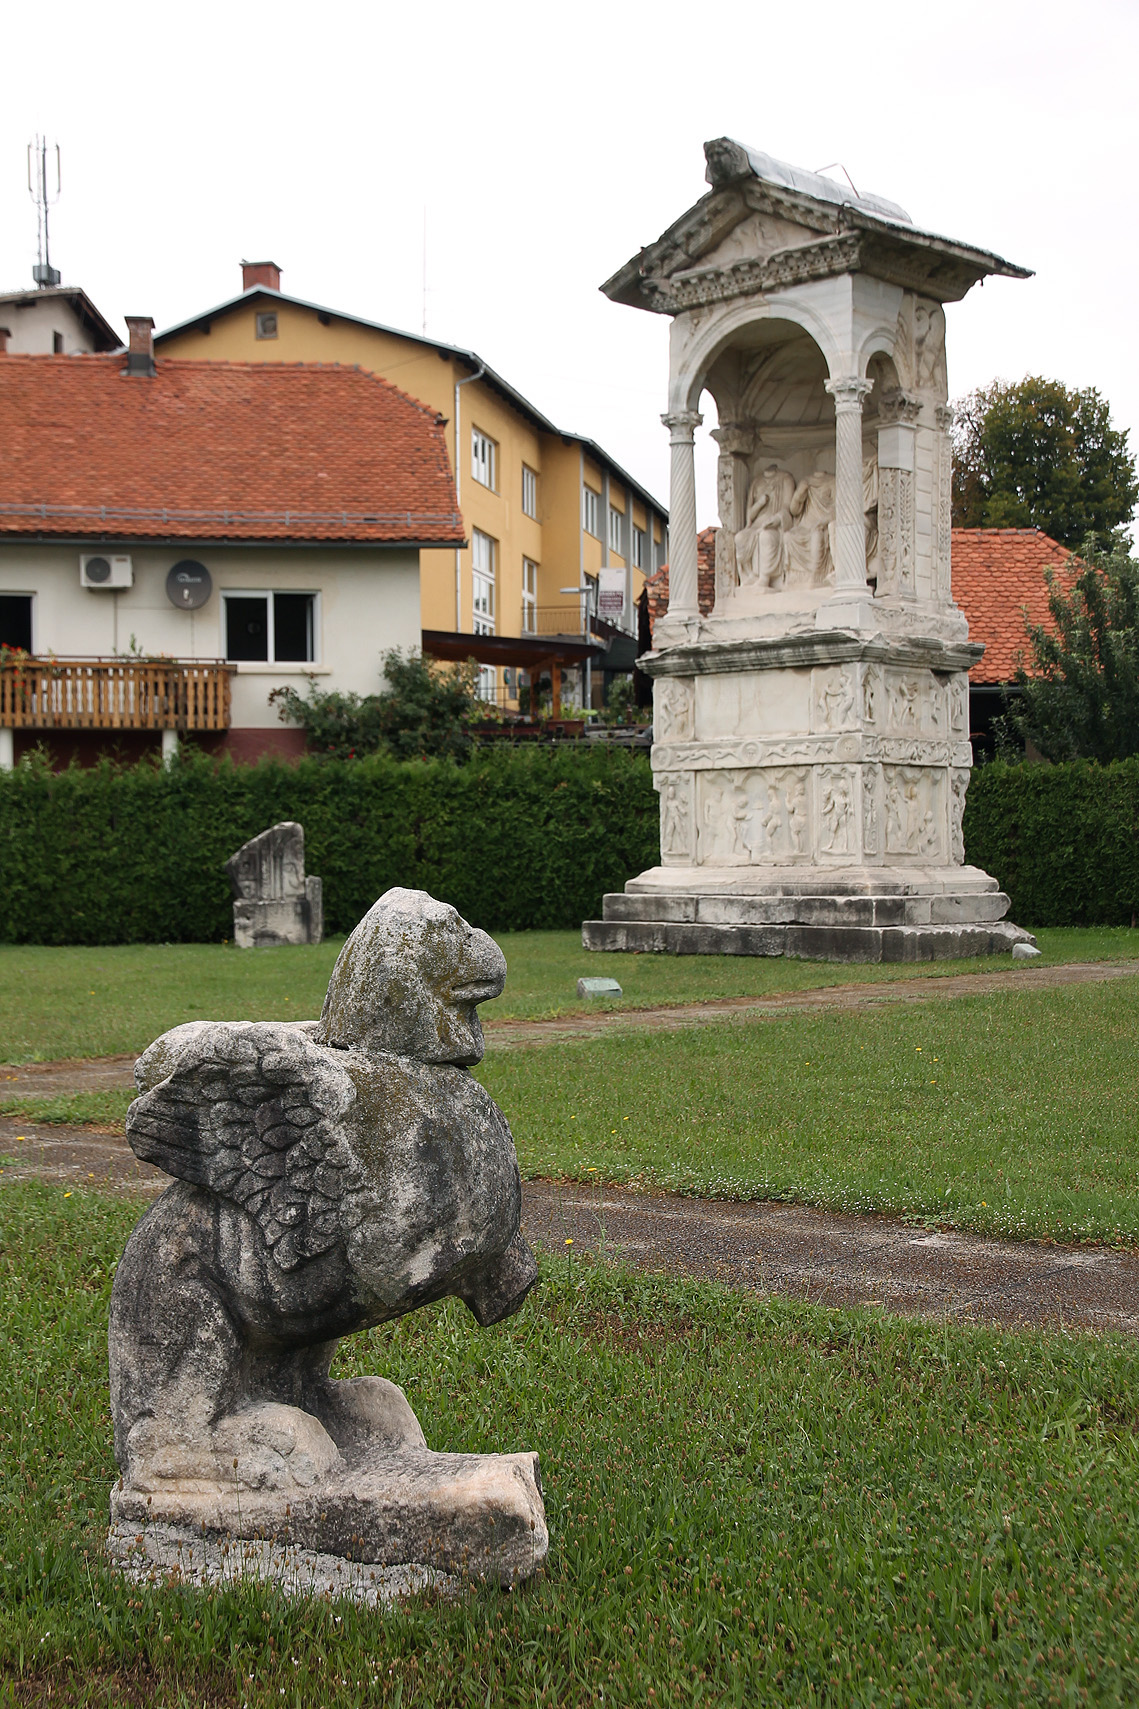 The griffon: a peculiar little statue in the centre of the site.